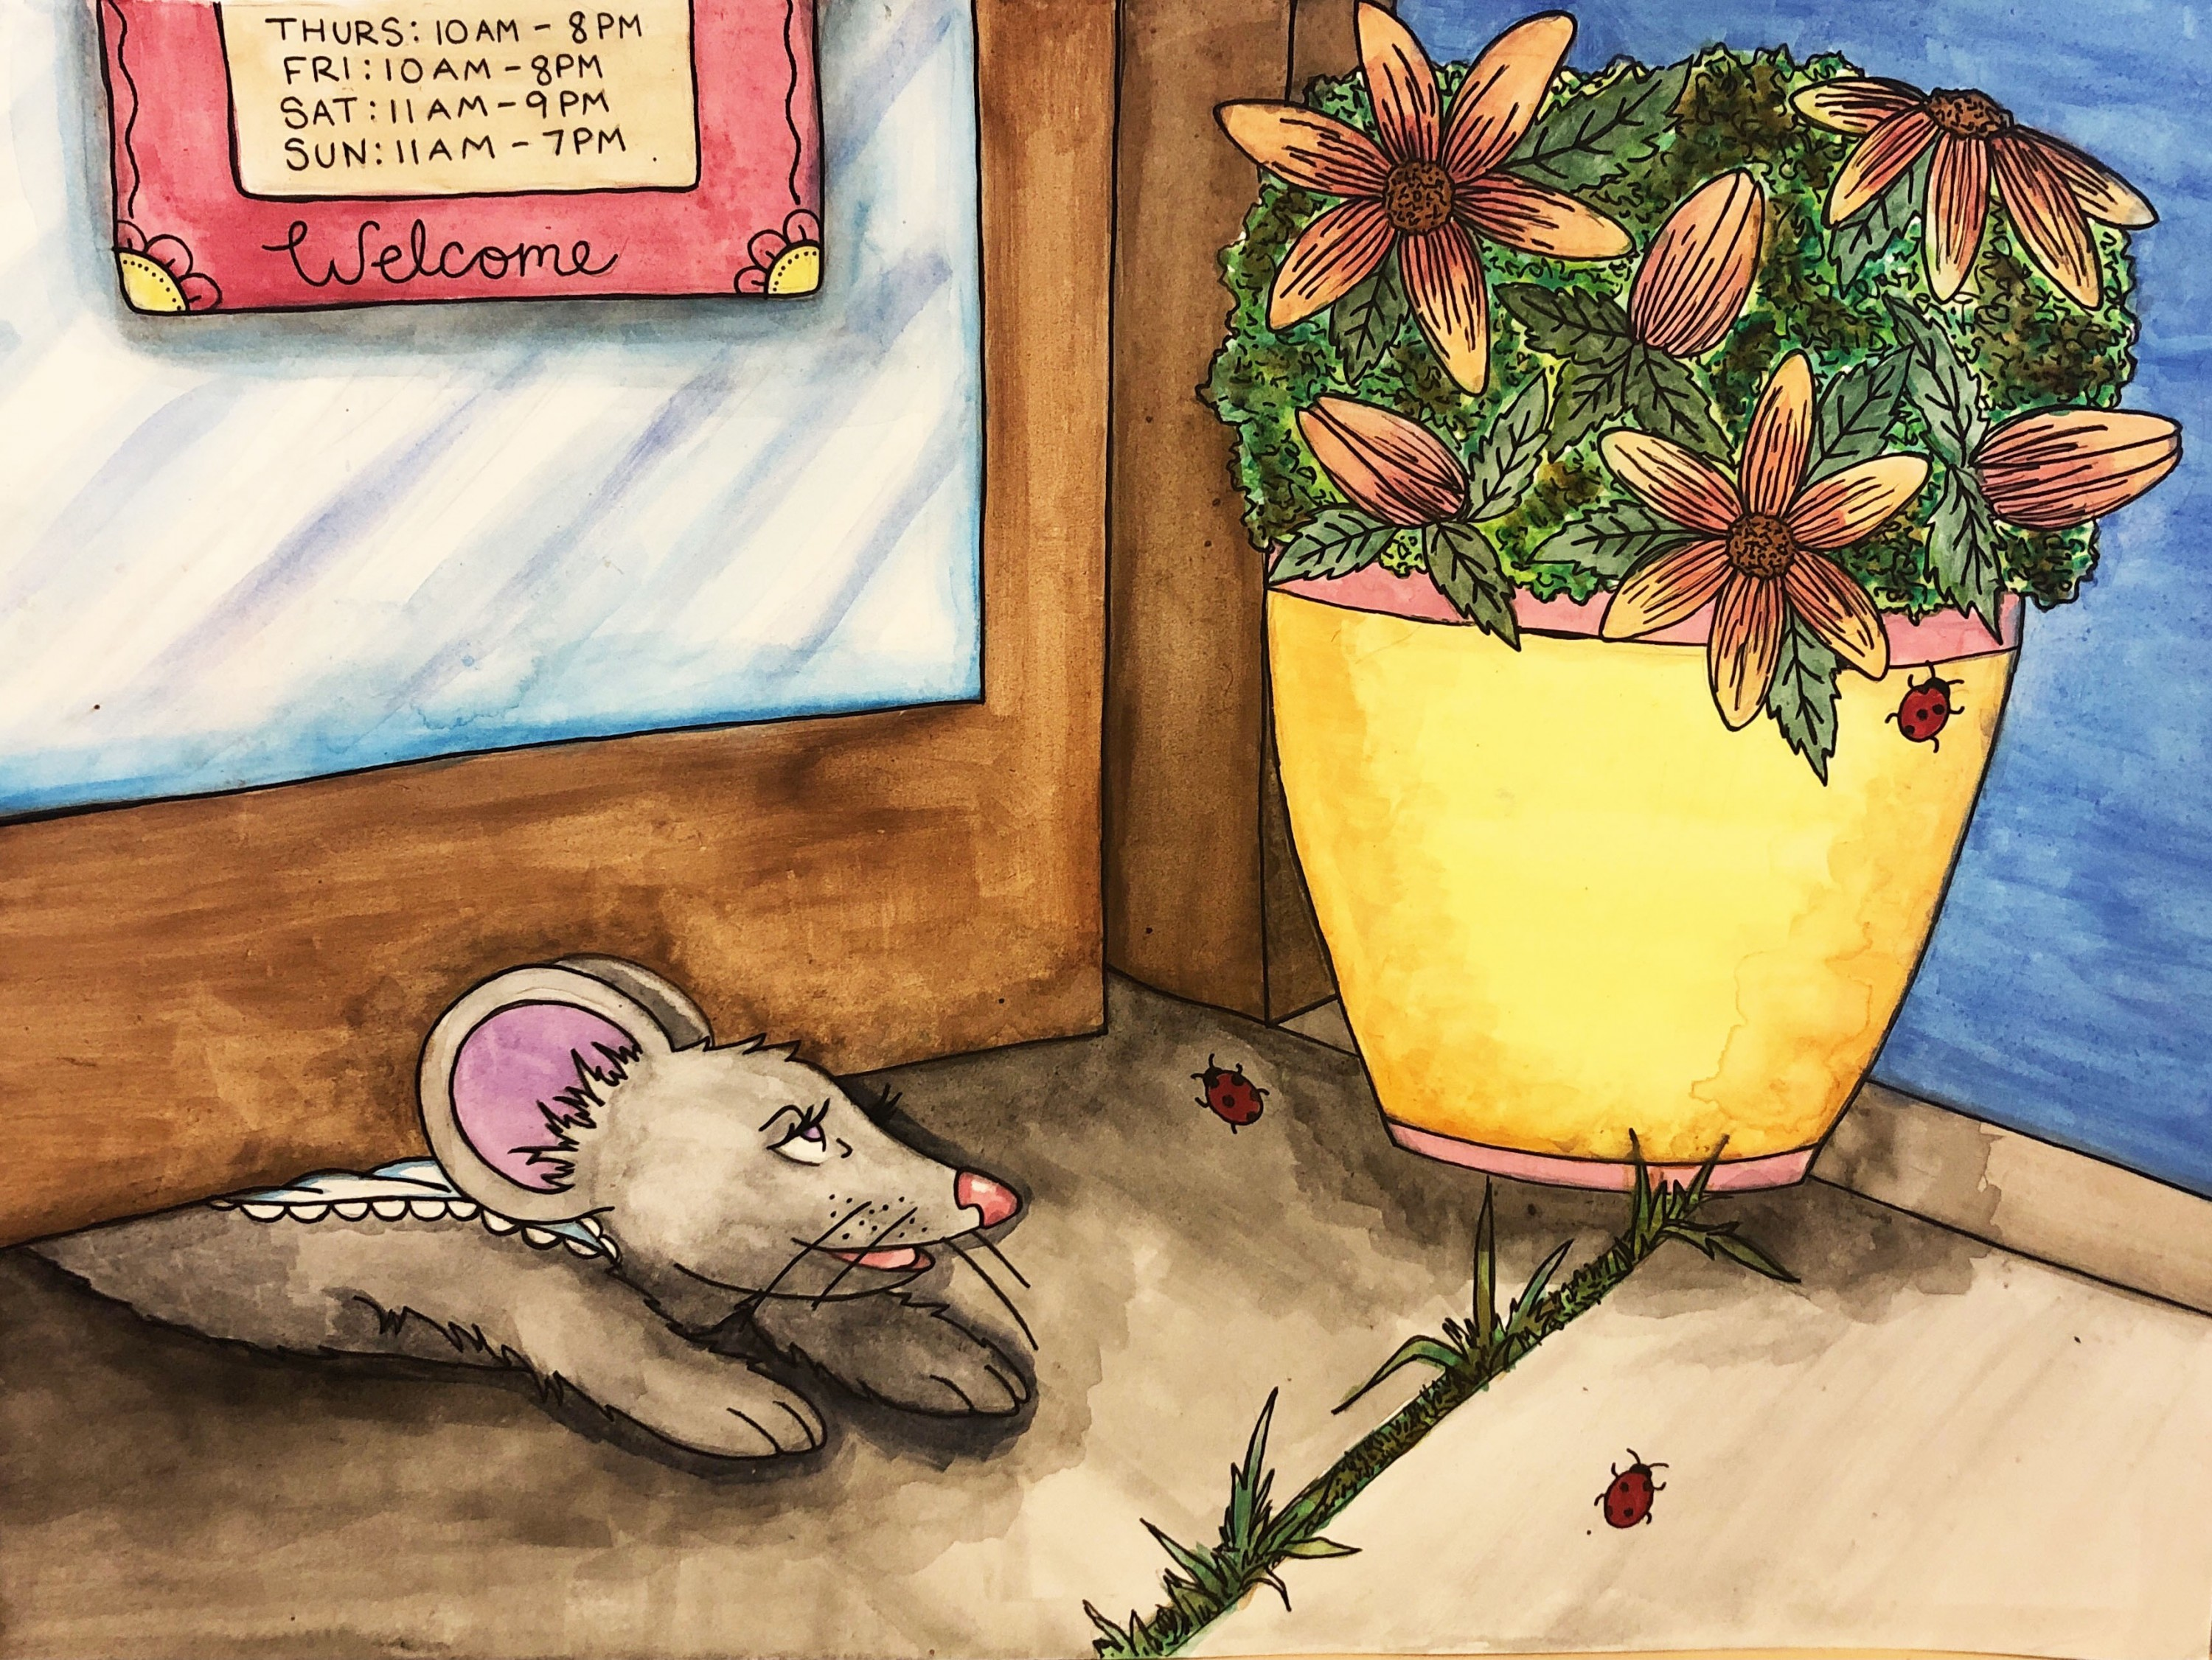 Violet slips out from underneath the door of the antique shop and into the outside world. The door is flanked by potted plants. Outside, the sky is dark and grass pokes out of the sidewalk.